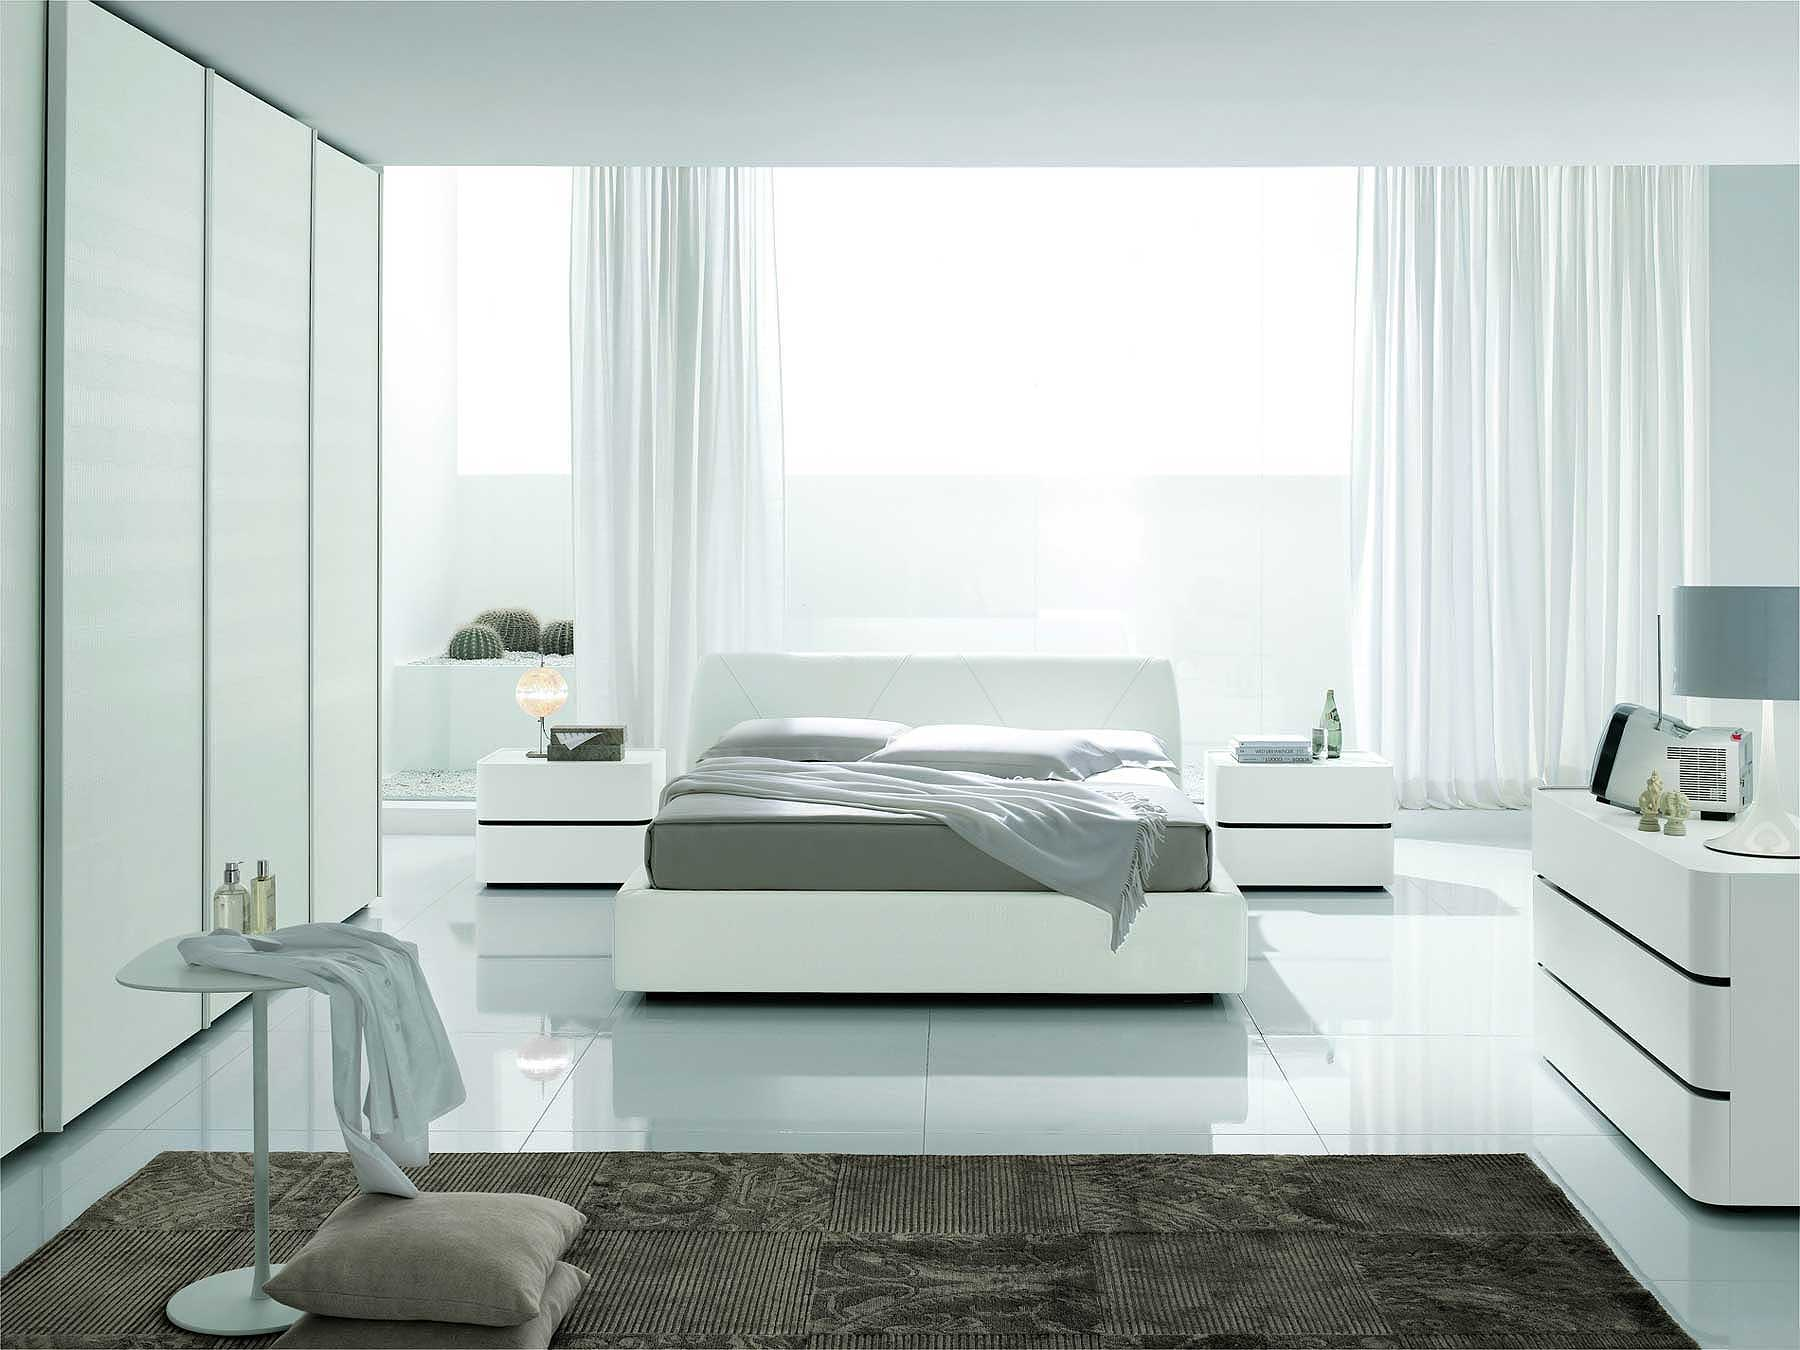 Top 13 Ideas for the White Bedroom - Qnud